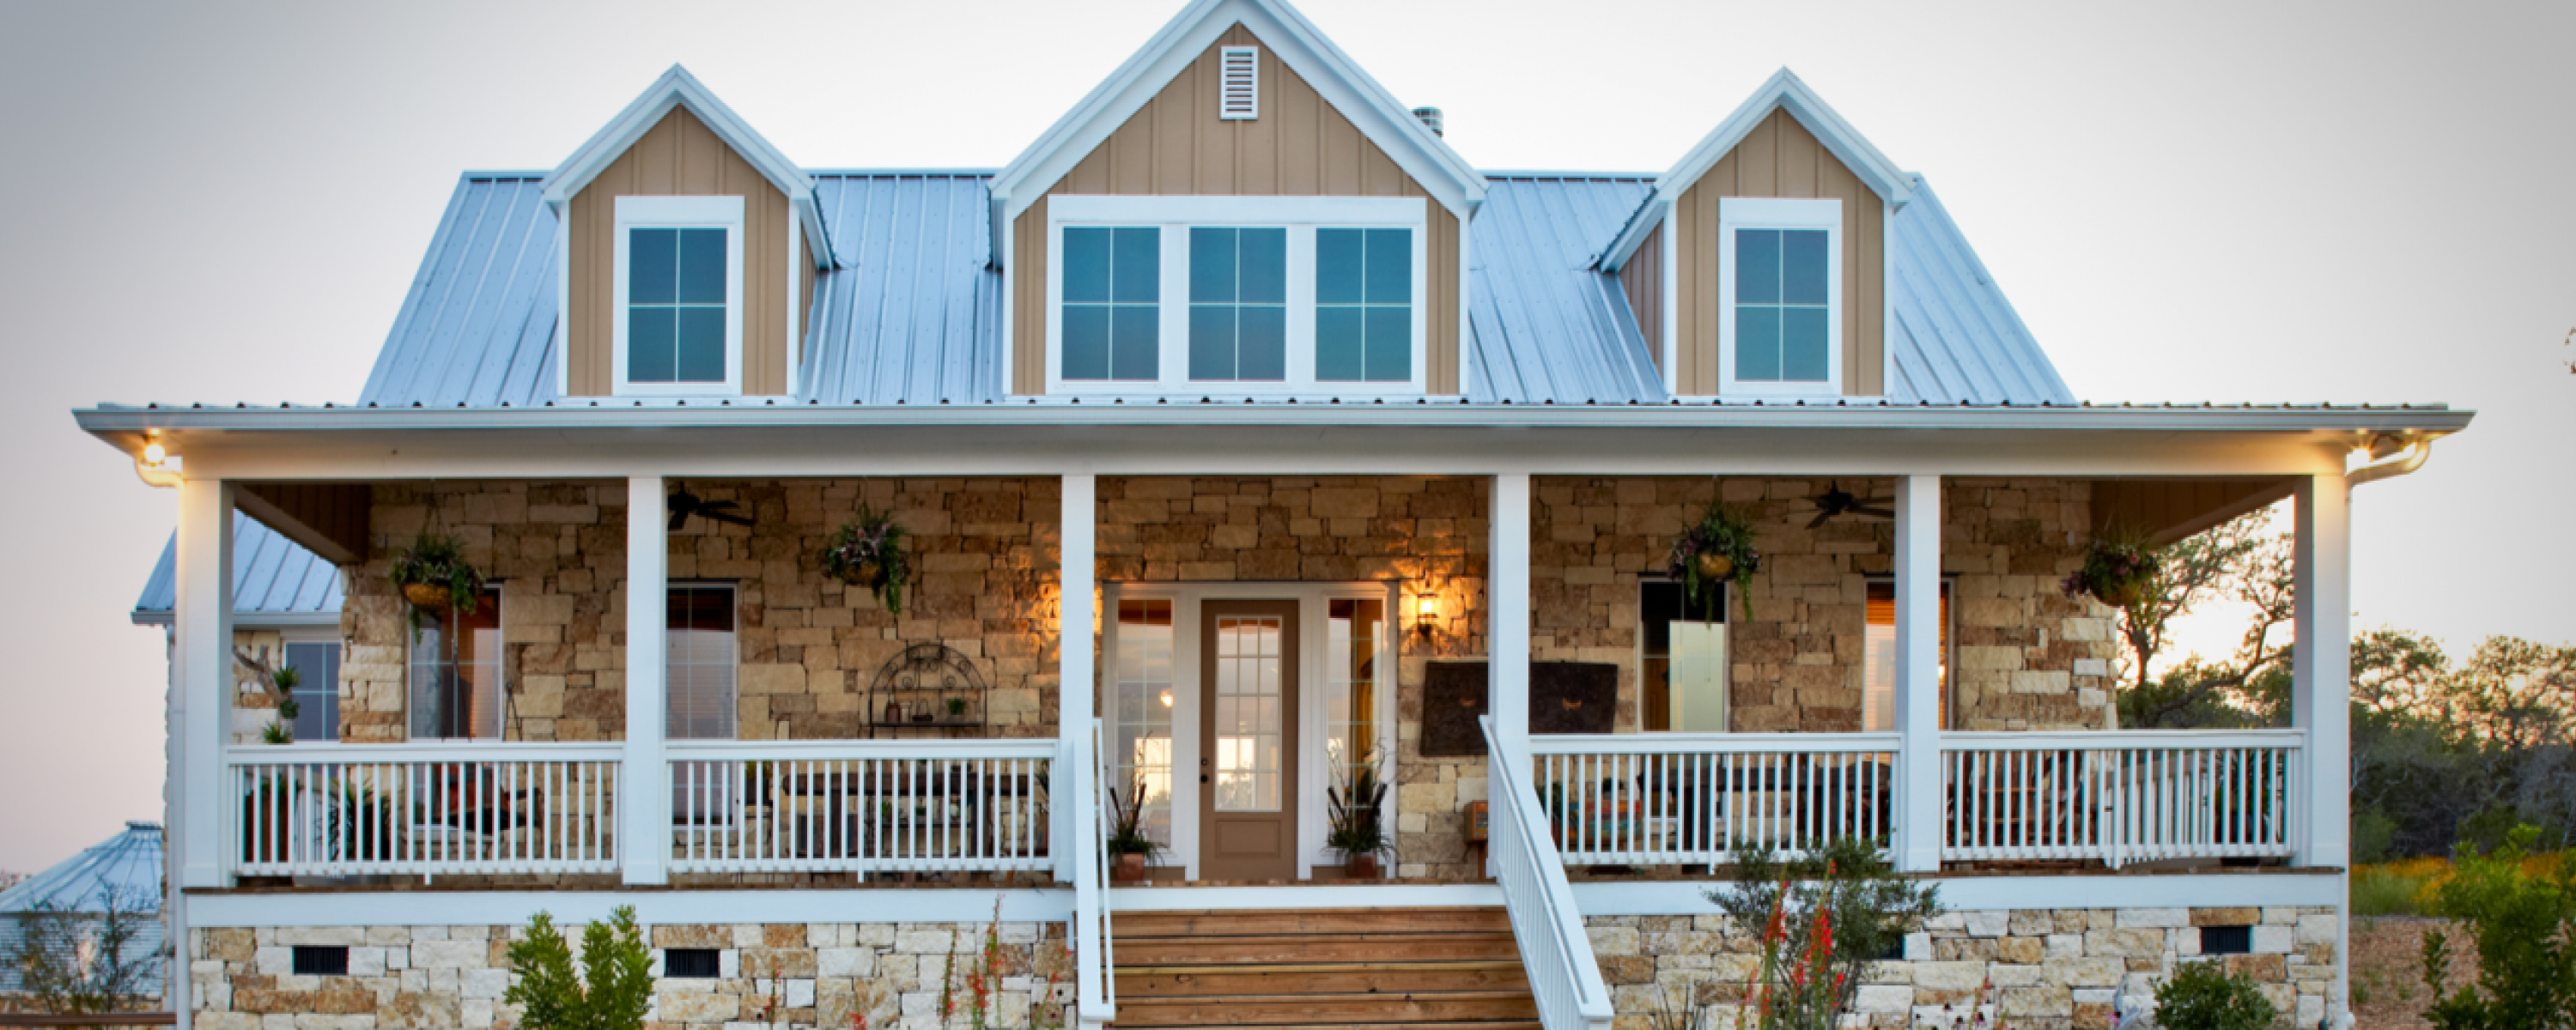 Texas hill country model home park texas casual cottages for Texas cottages builder